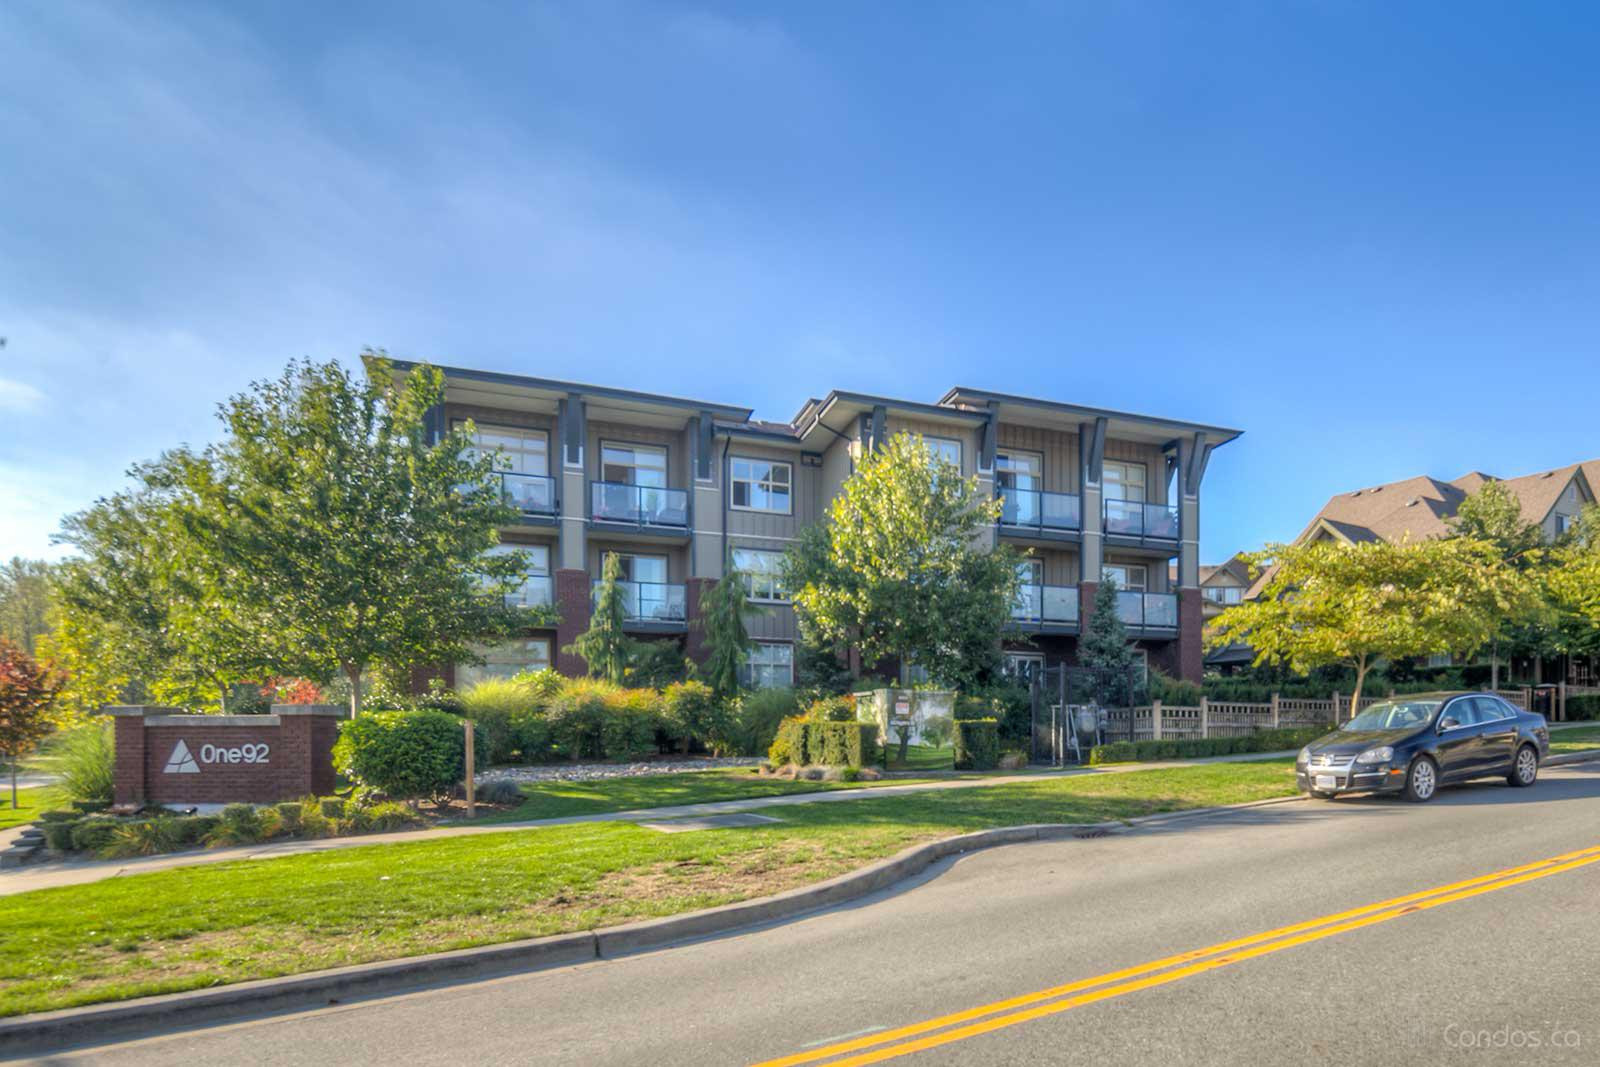 One92 at 19201 66 Ave, Surrey 1